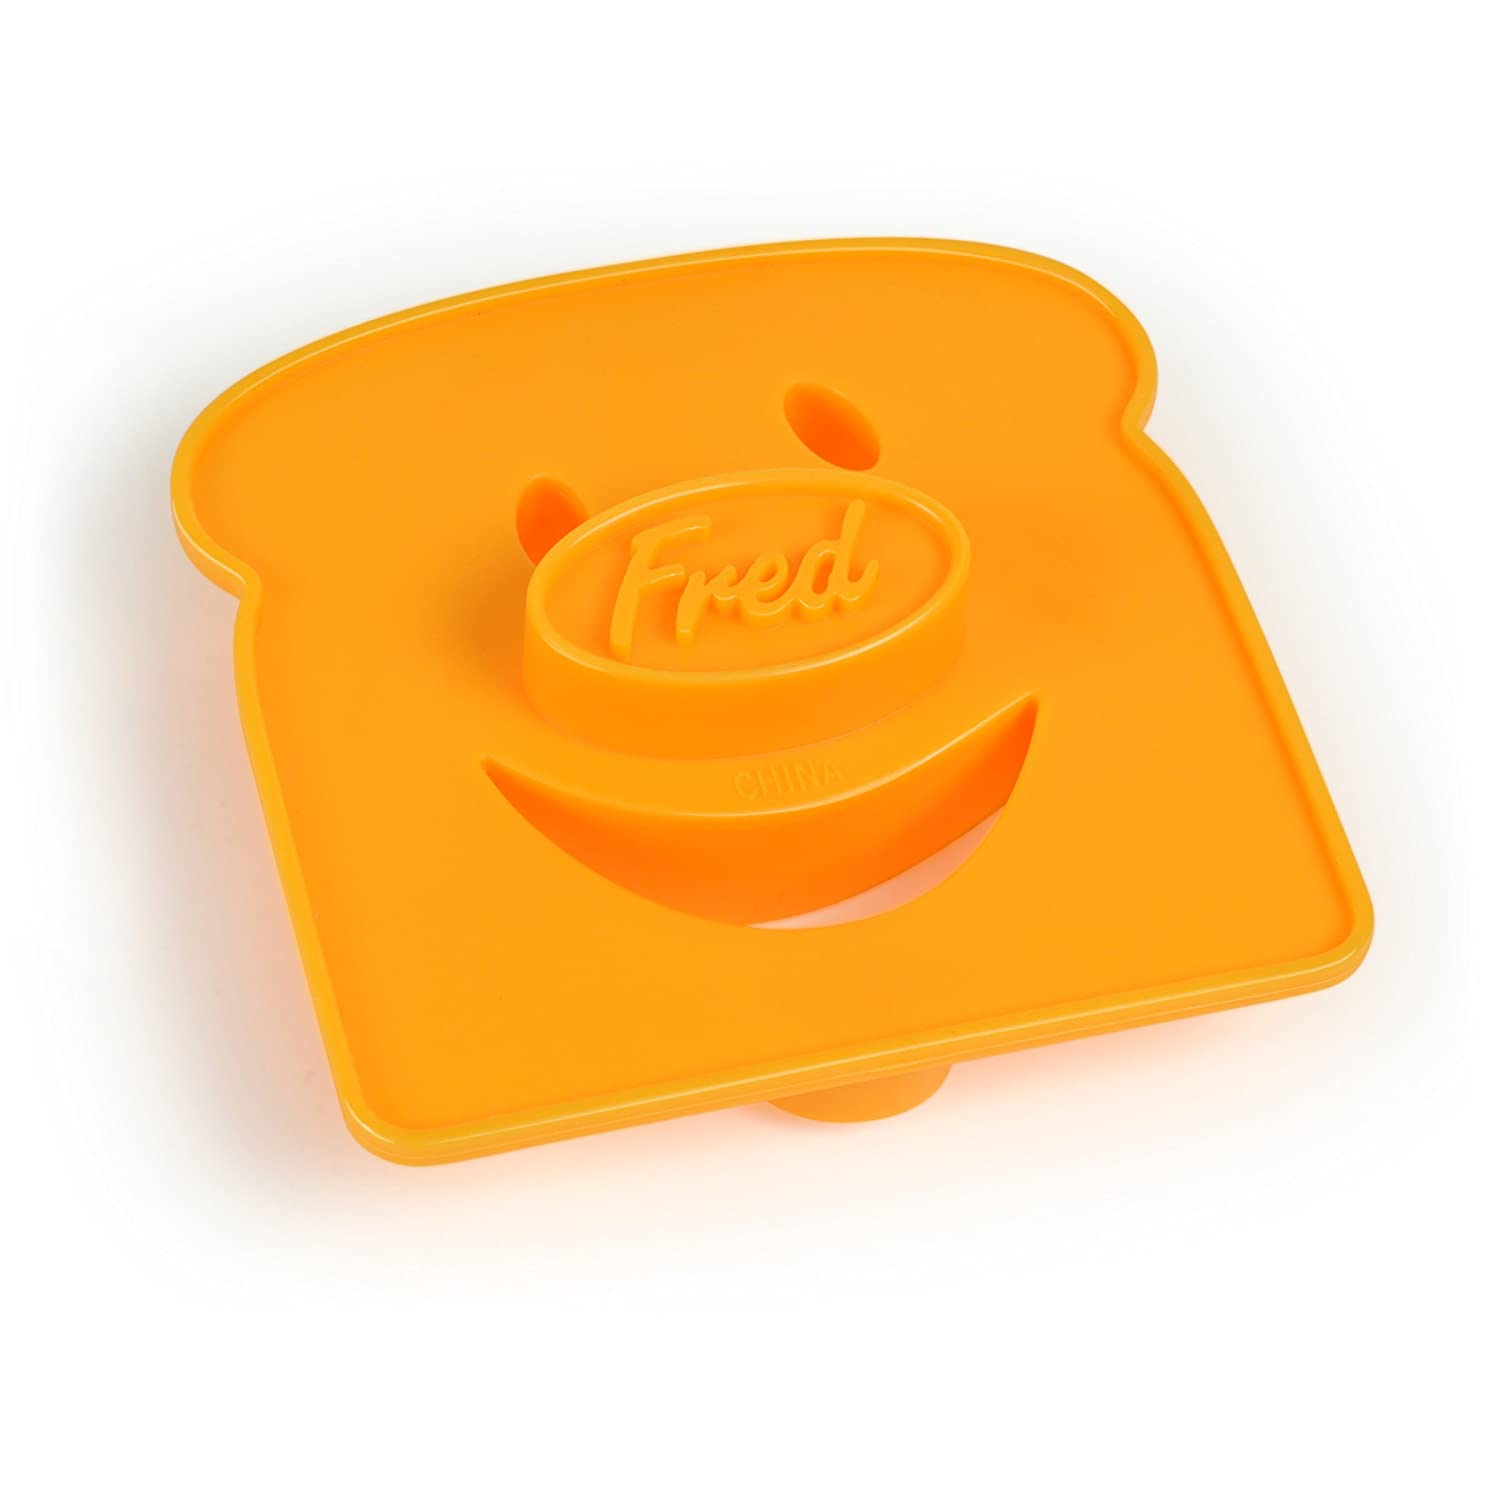 Fred BITES & PIECES Puzzling Crust Cutter BANDP